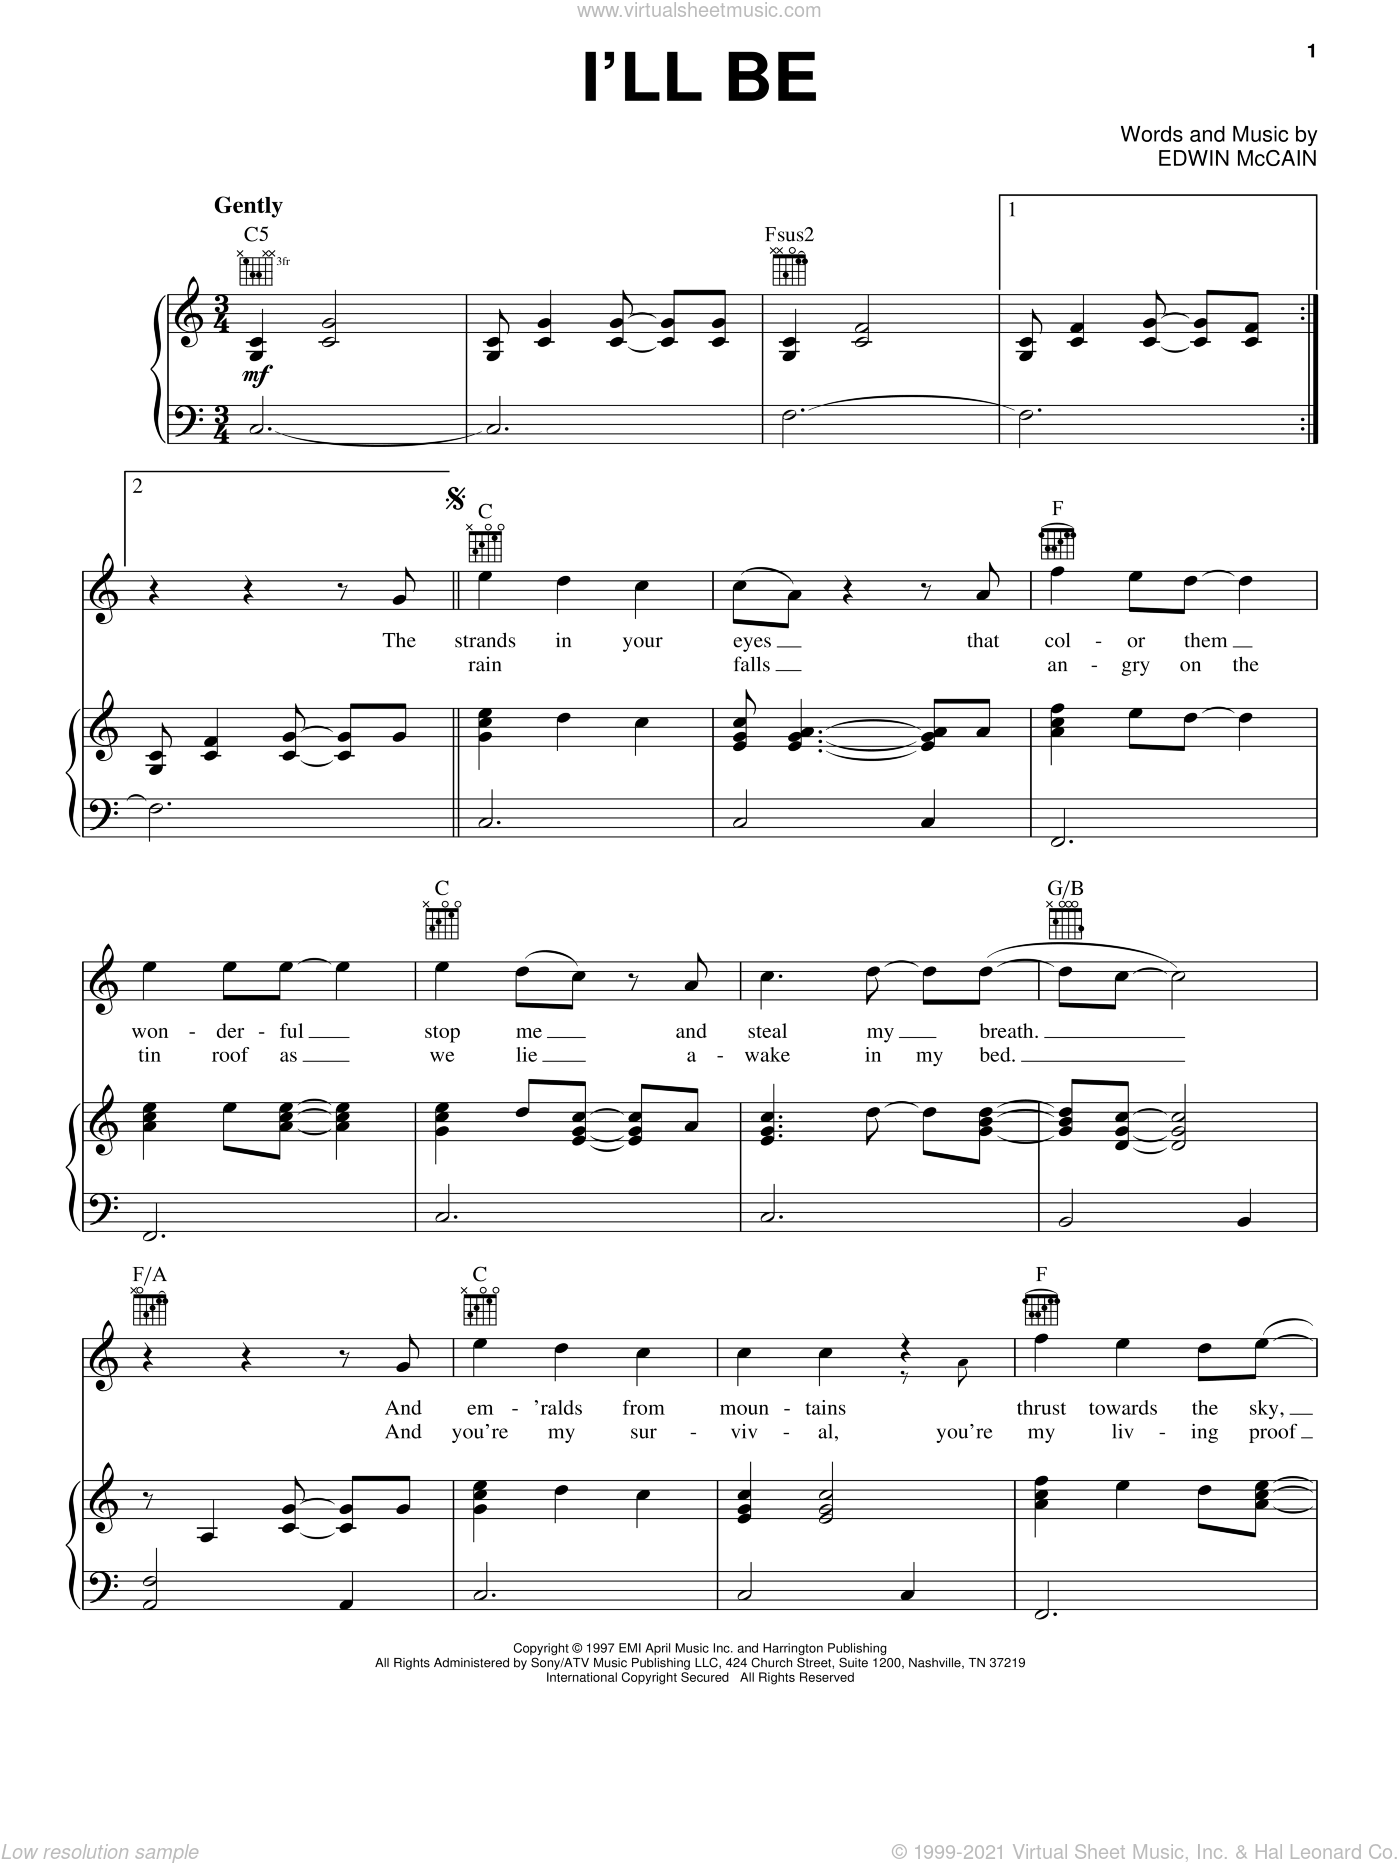 I'll Be sheet music for voice, piano or guitar by Edwin McCain, intermediate skill level